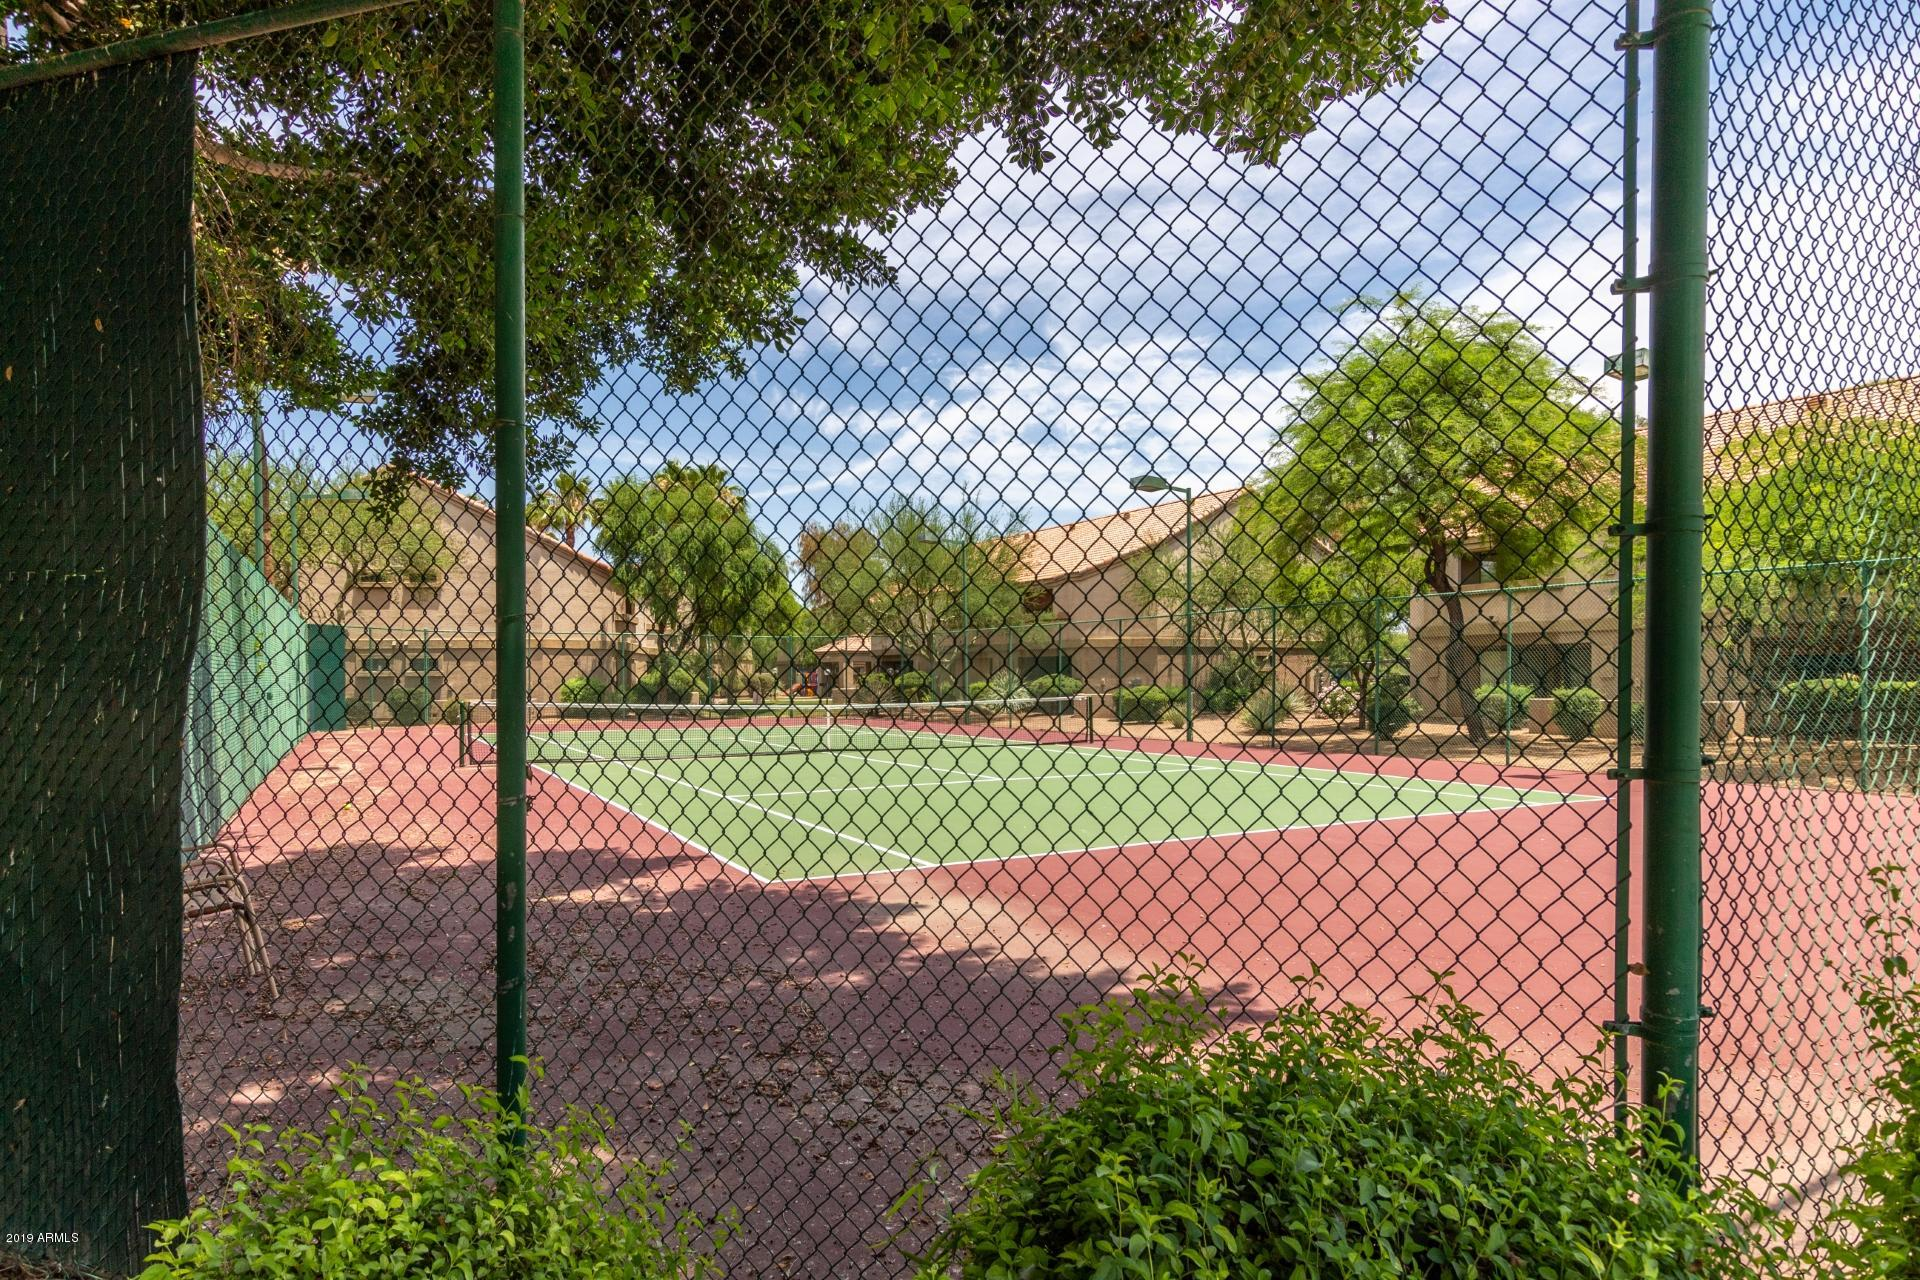 MLS 5937570 1287 N ALMA SCHOOL Road Unit 109, Chandler, AZ 85224 Chandler AZ Condominium